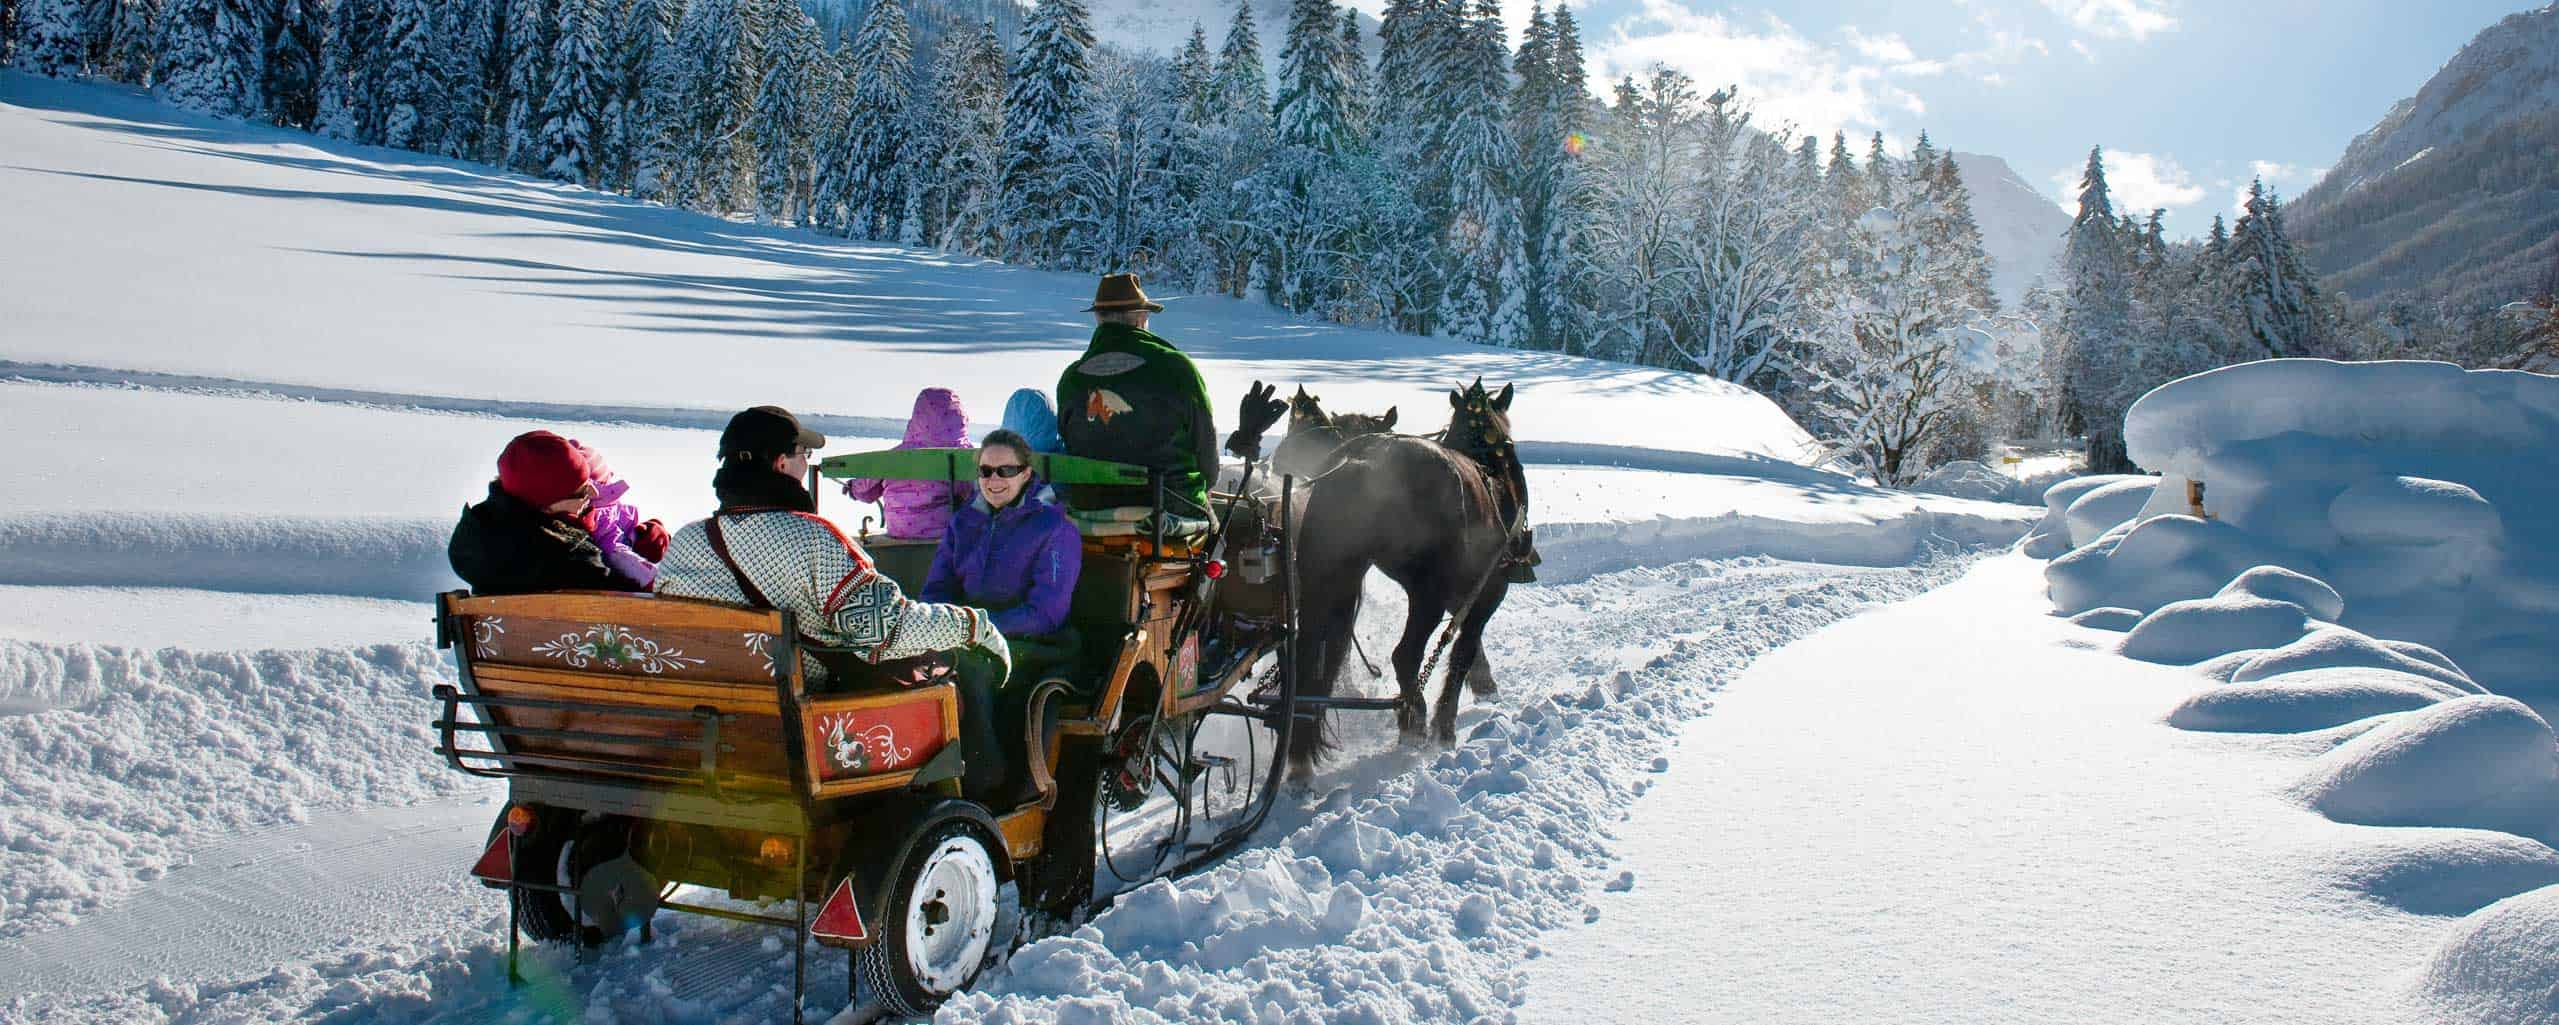 Idyllic horse-drawn carriage rides through the snow-covered landscape of Kleinarl.